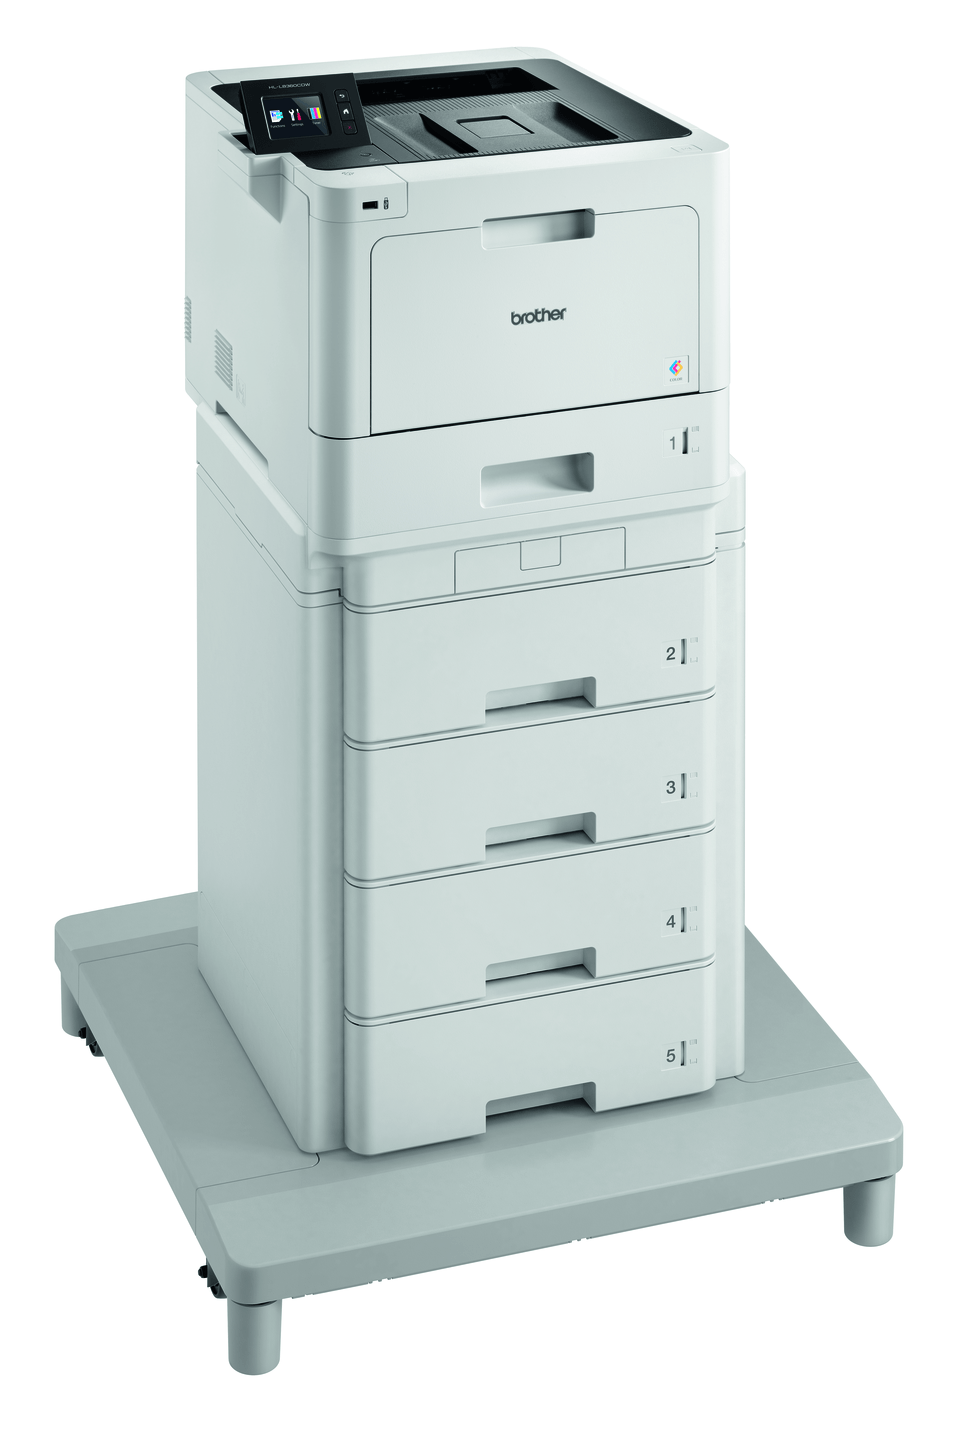 Brother HL-L8360CDWMT Professional Colour, Duplex, Wireless Laser Printer + Tower Tray + Tower Tray Connector 3